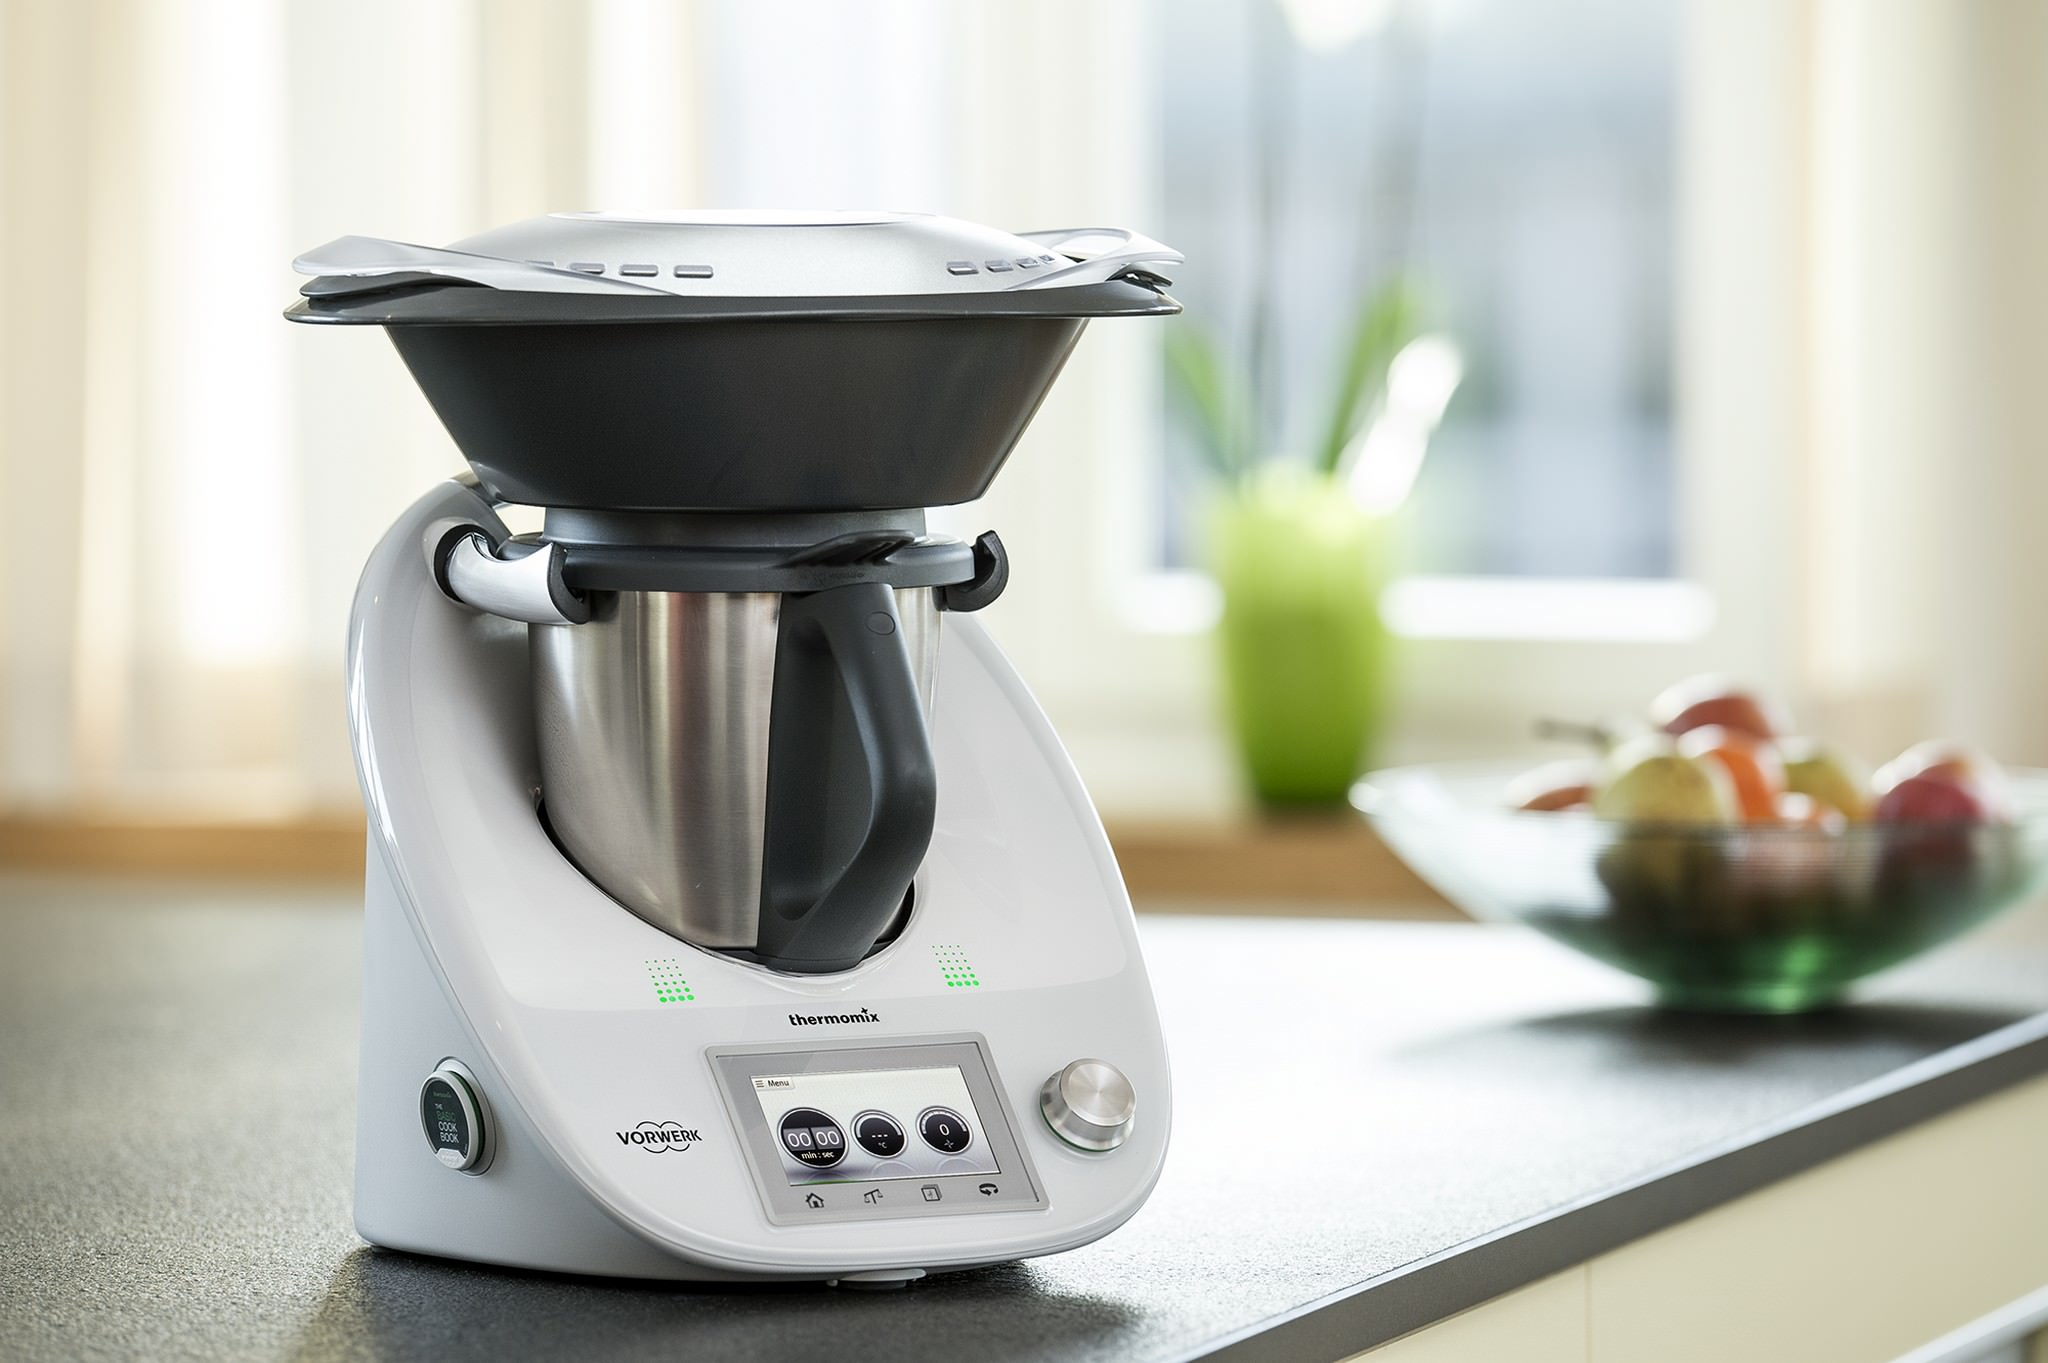 Thermomix cooking Experience demo